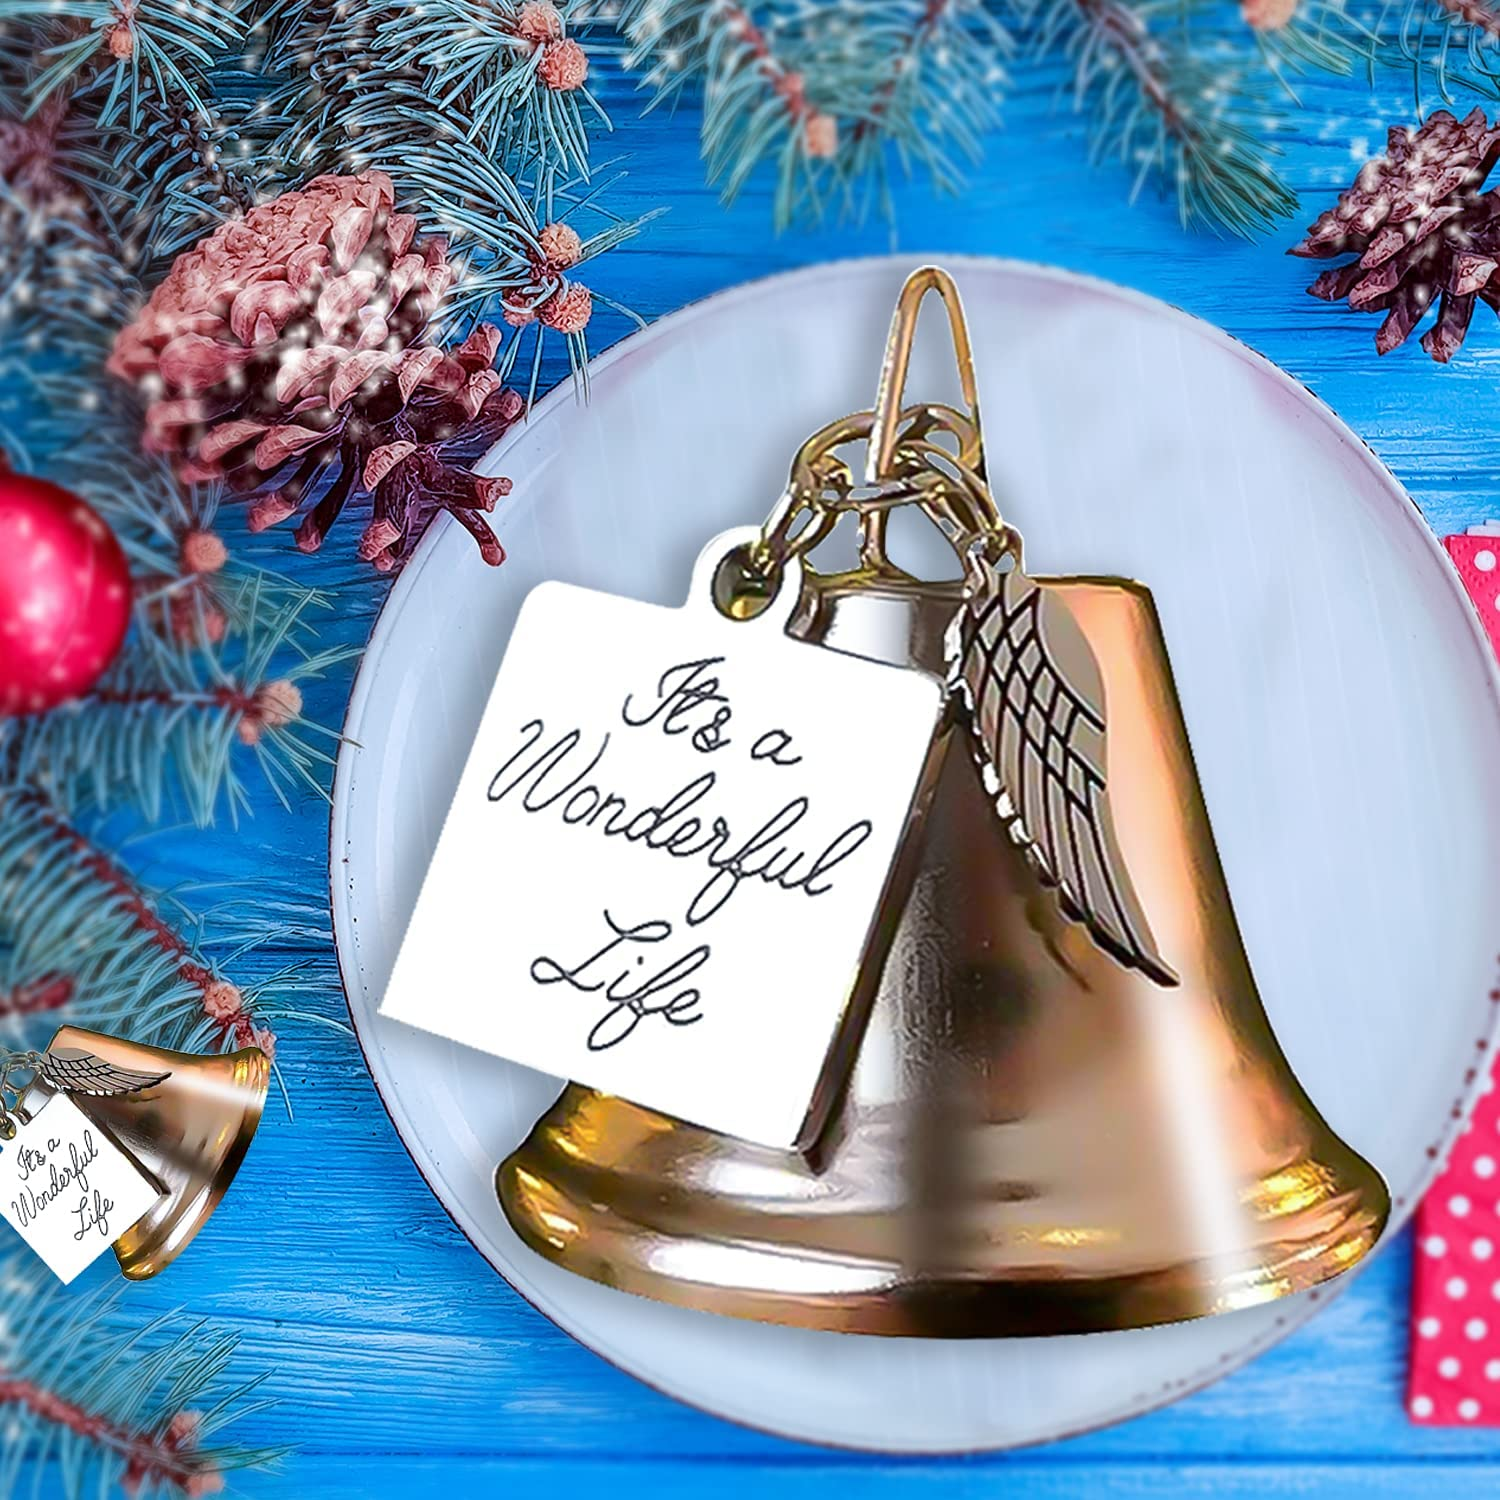 NewX Christmas Bell Ornament Bulk Angel Wing Charm with Stainless Steel Christmas Angel Bell Wonderful Life Bells Christmas Tree Remembrance